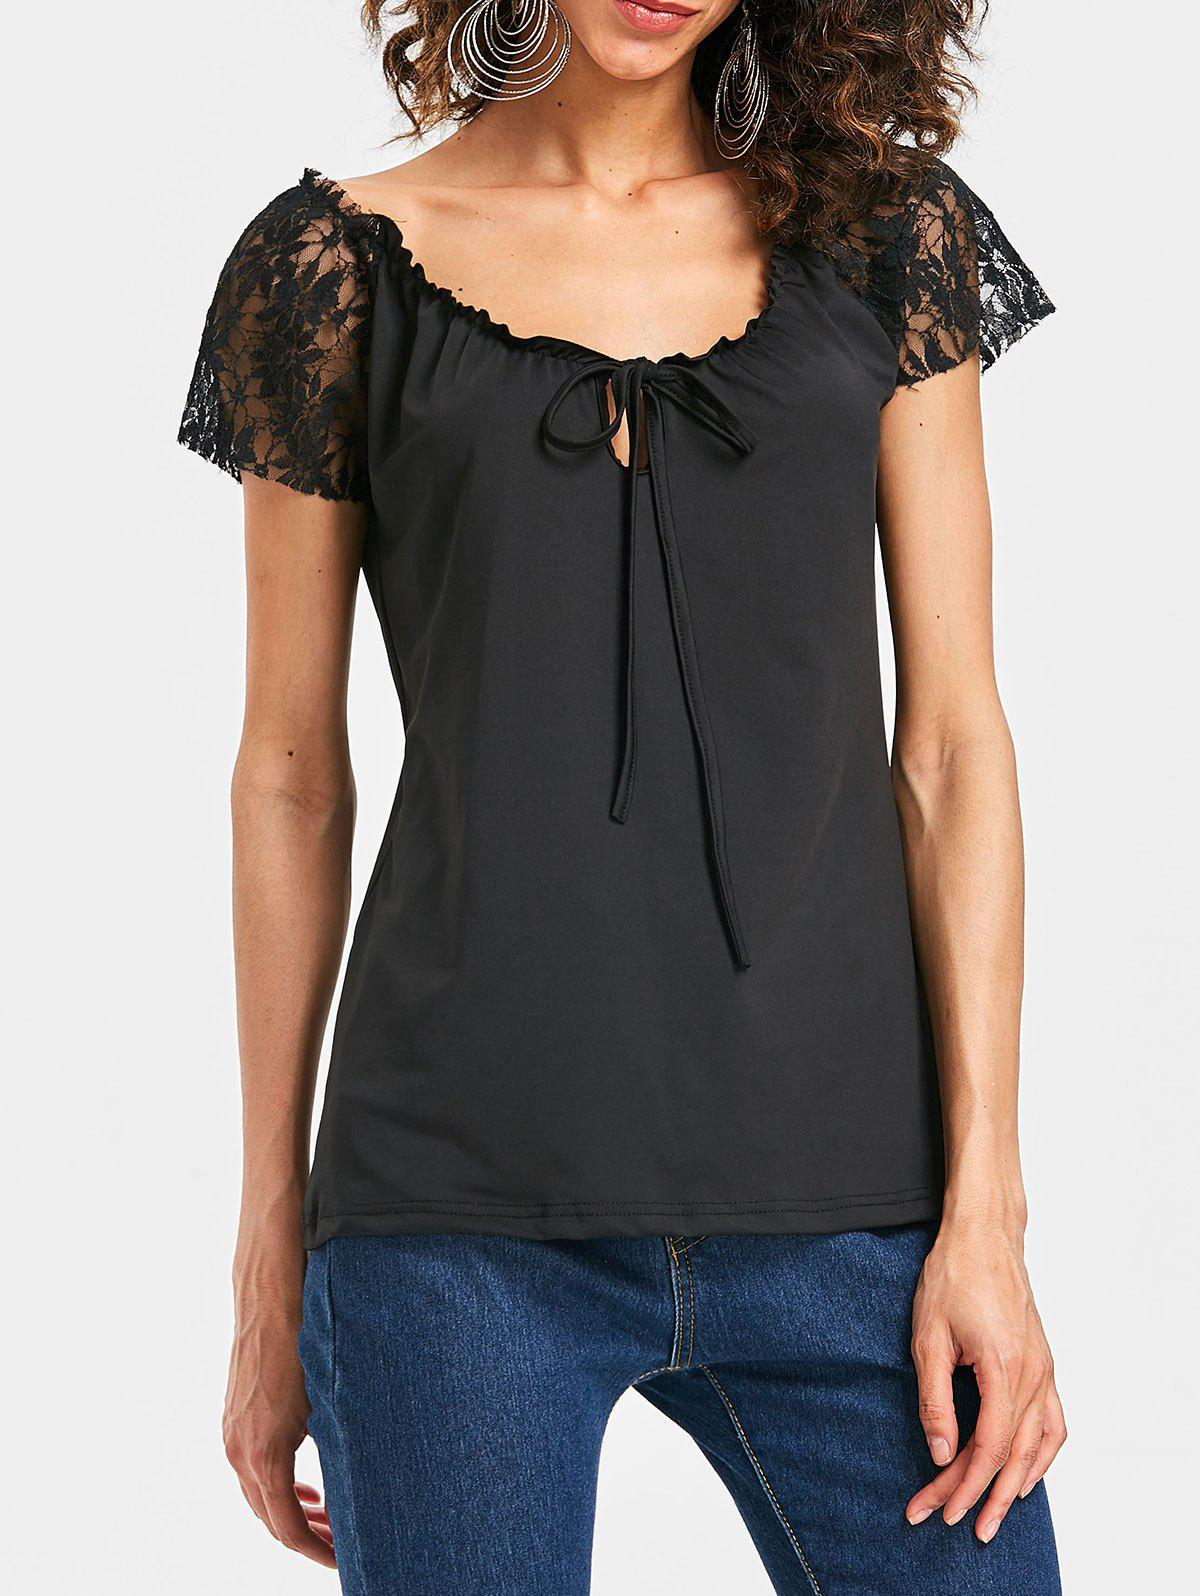 Scoop Neck Lace Insert T-shirt - BLACK L